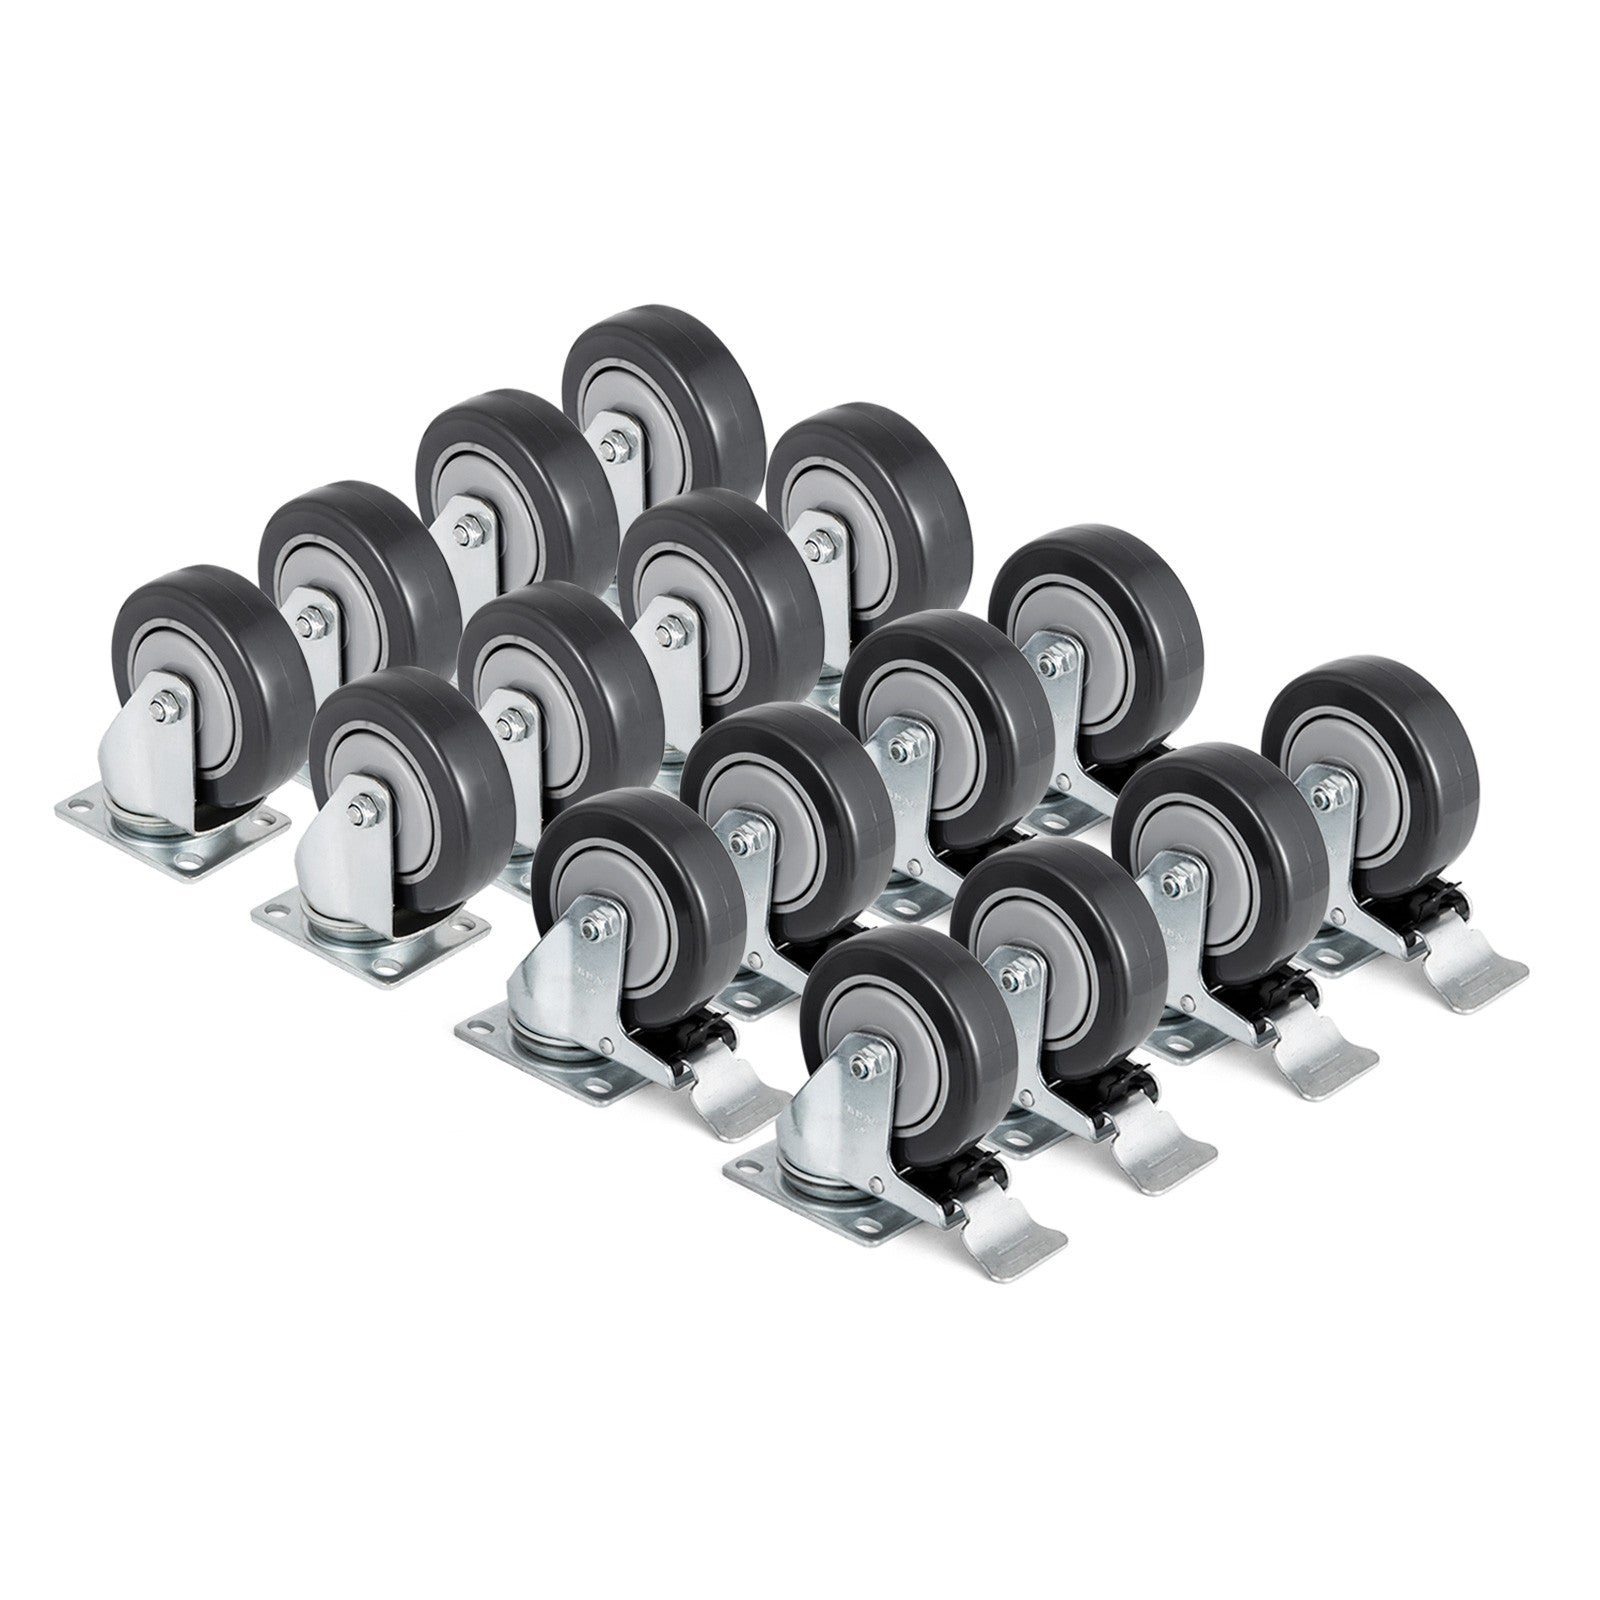 "Set Of 16 Swivel Plate Casters With 4"" Polyurethane Wheels & 8 Side Brakes"